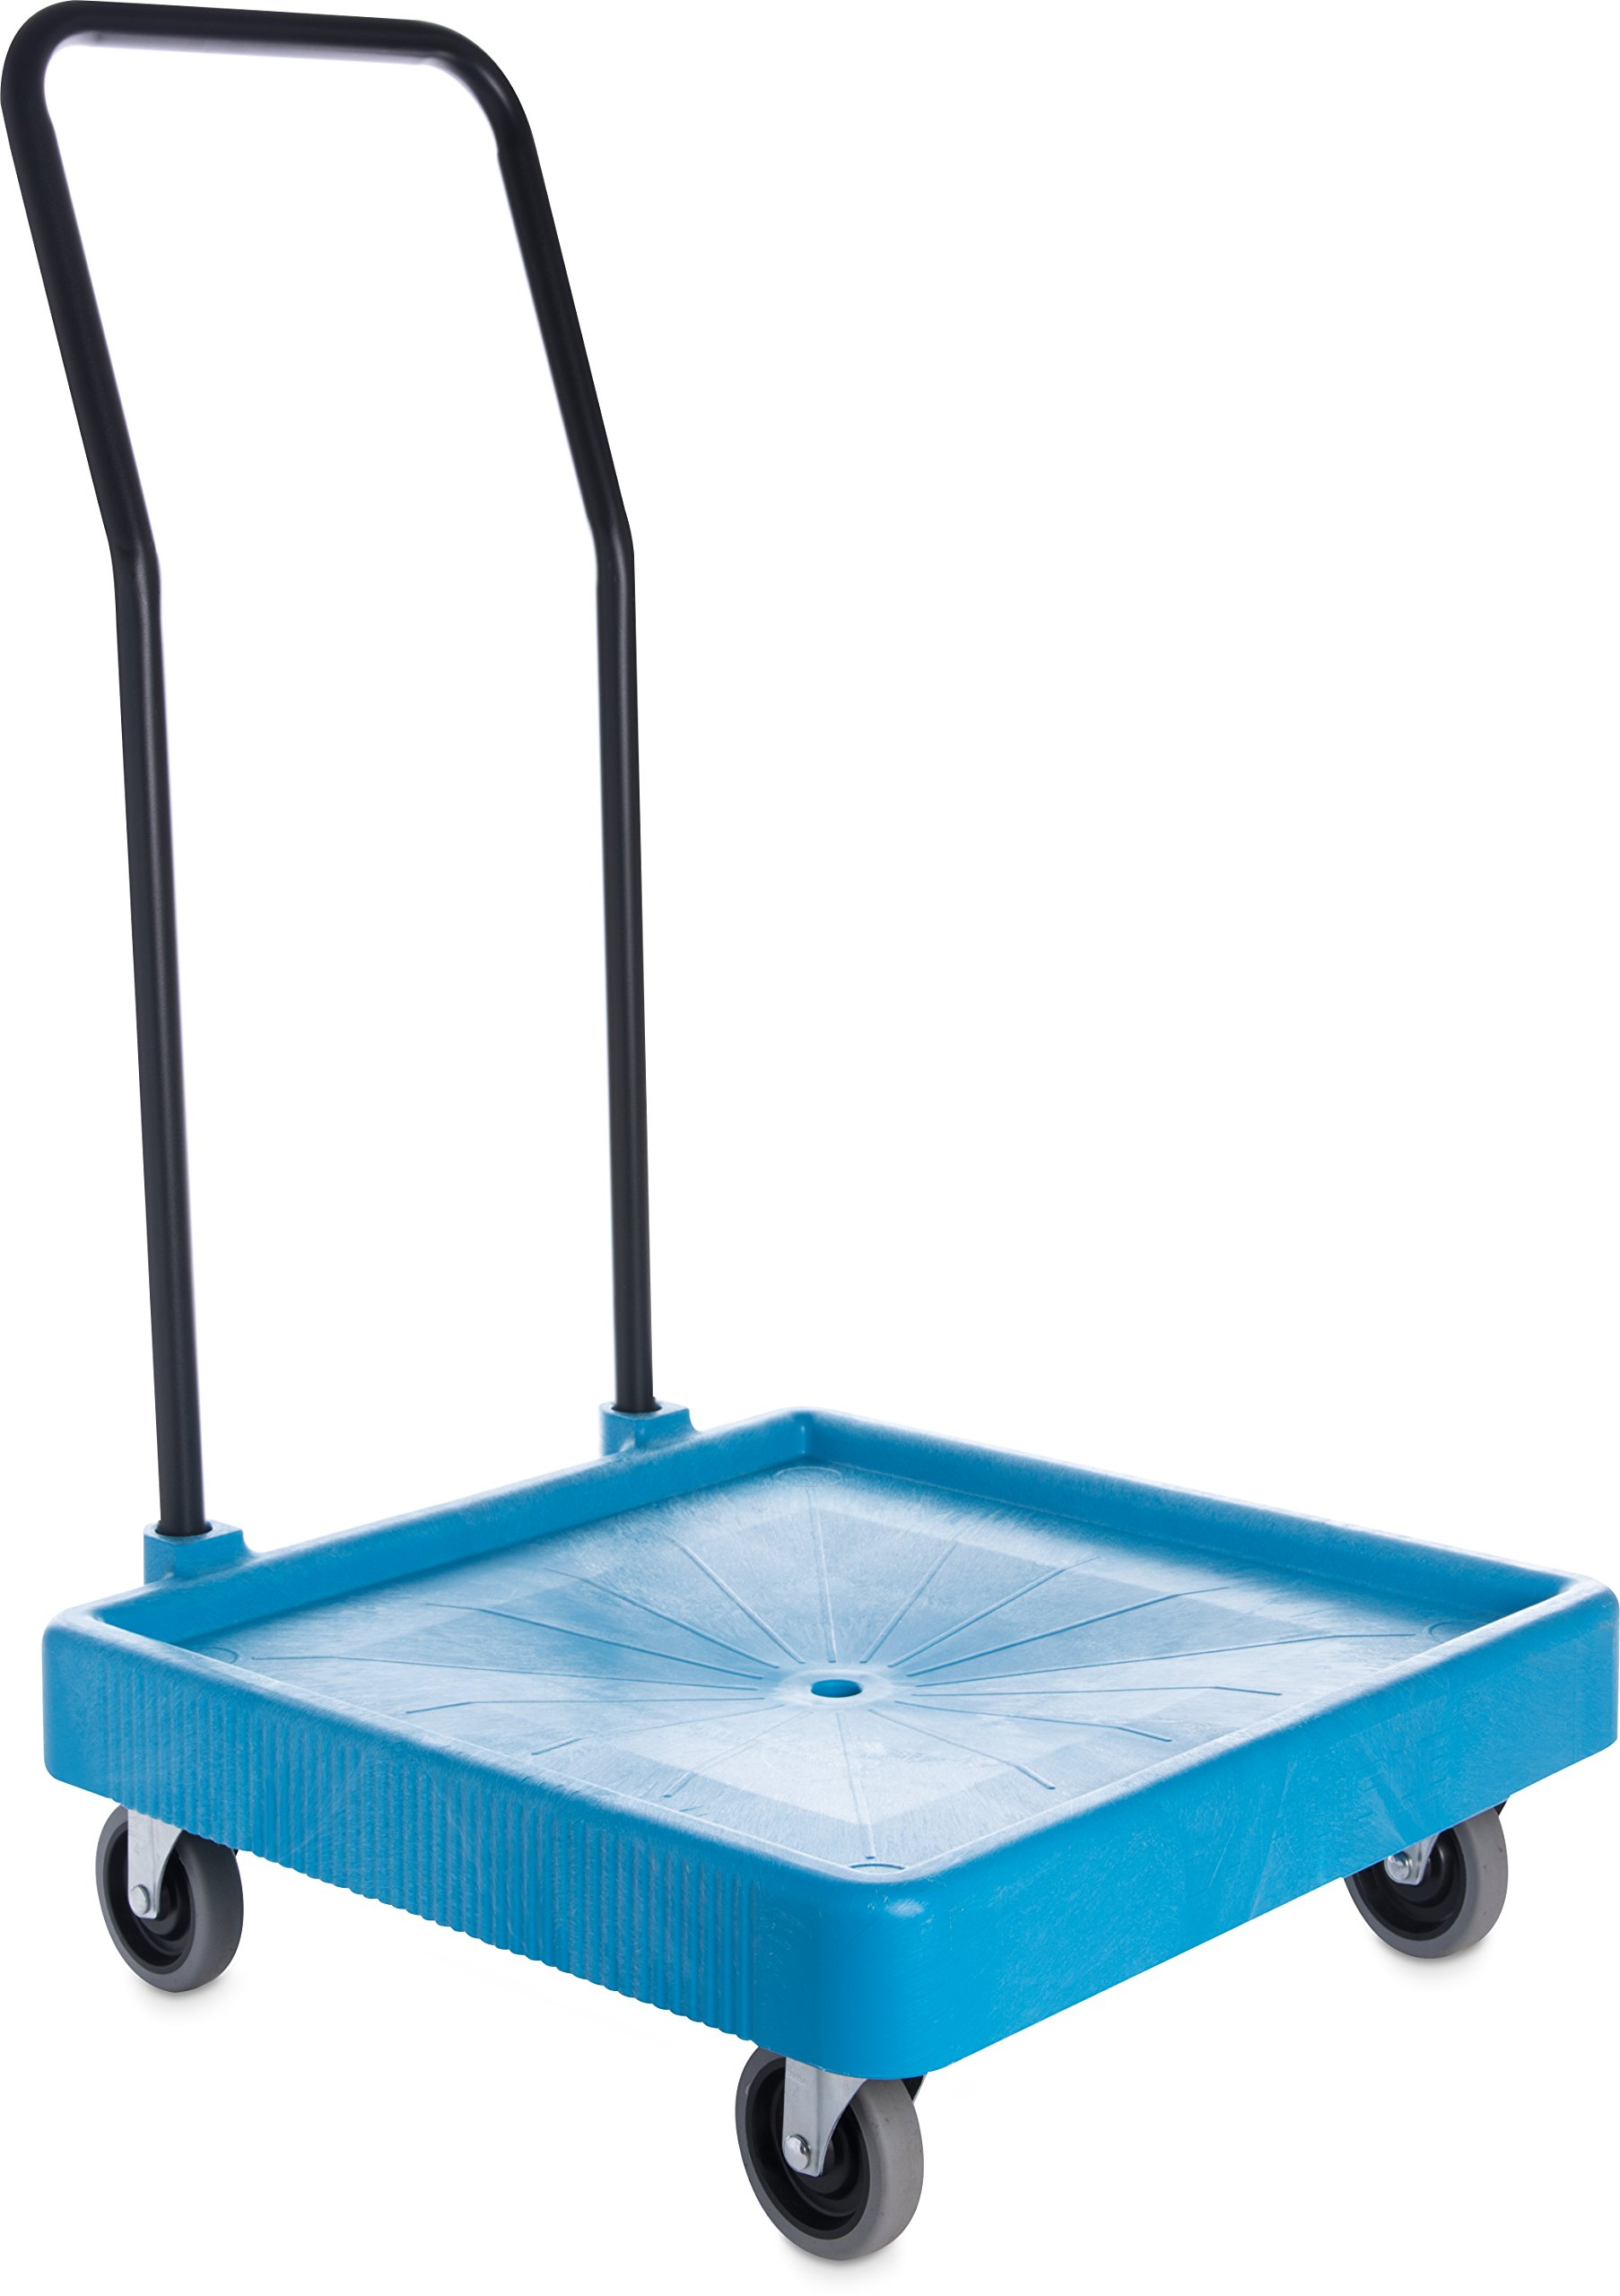 Carlisle C2236H14 Universal Warewashing Rack Dolly with Handle, 350 lb Capacity, Blue